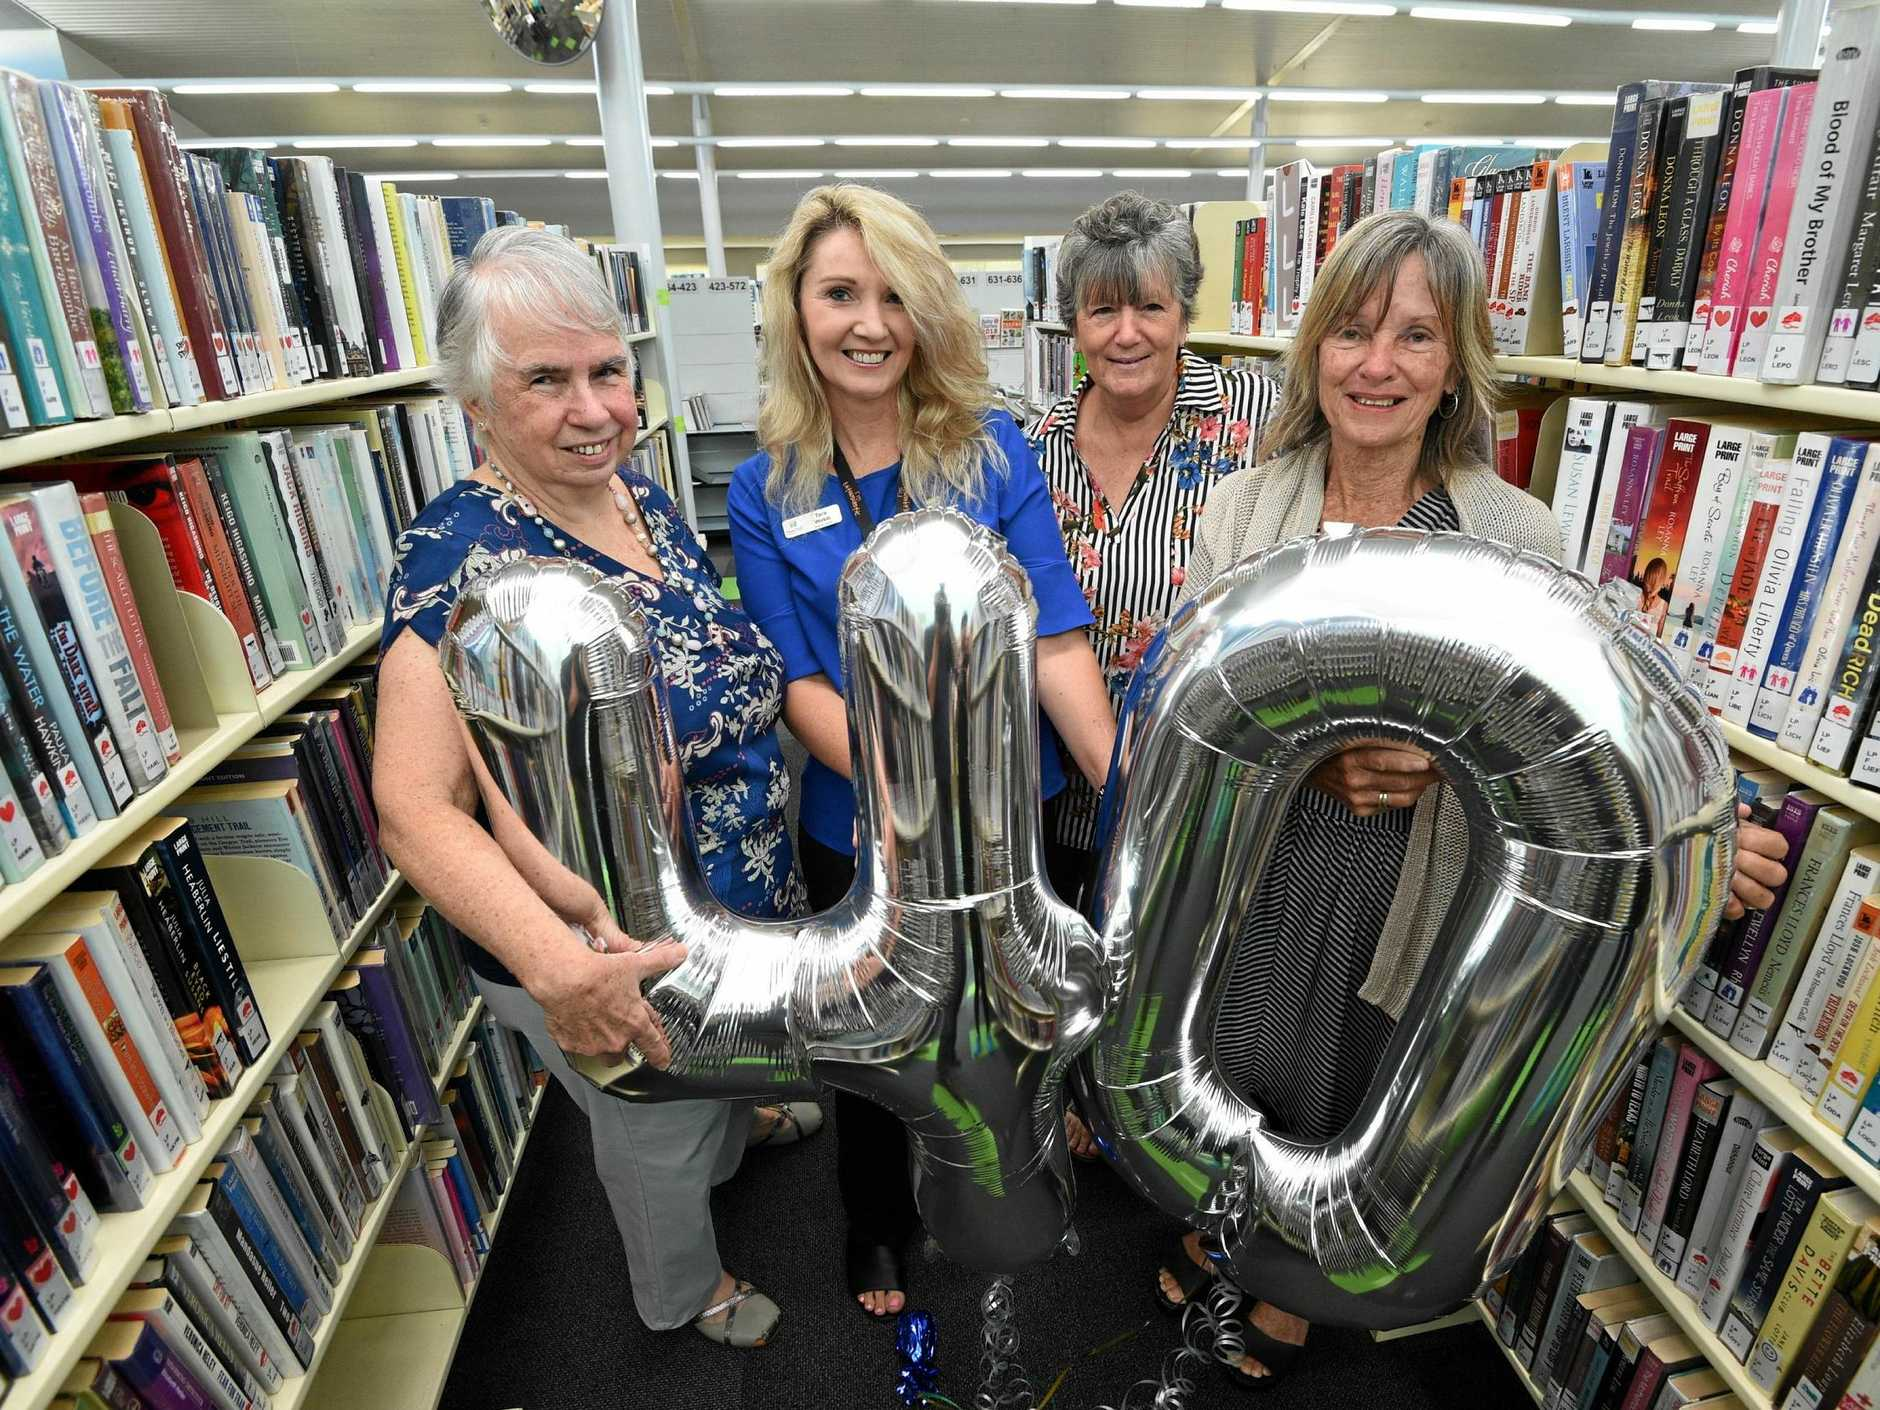 Celebrating the 40th anniversary of the Hervey Bay Library are (L) Sandra Maynes (first librarian), Tara Webb (current librarian) and former librarians Cathie McNamara and Linda Alexander.